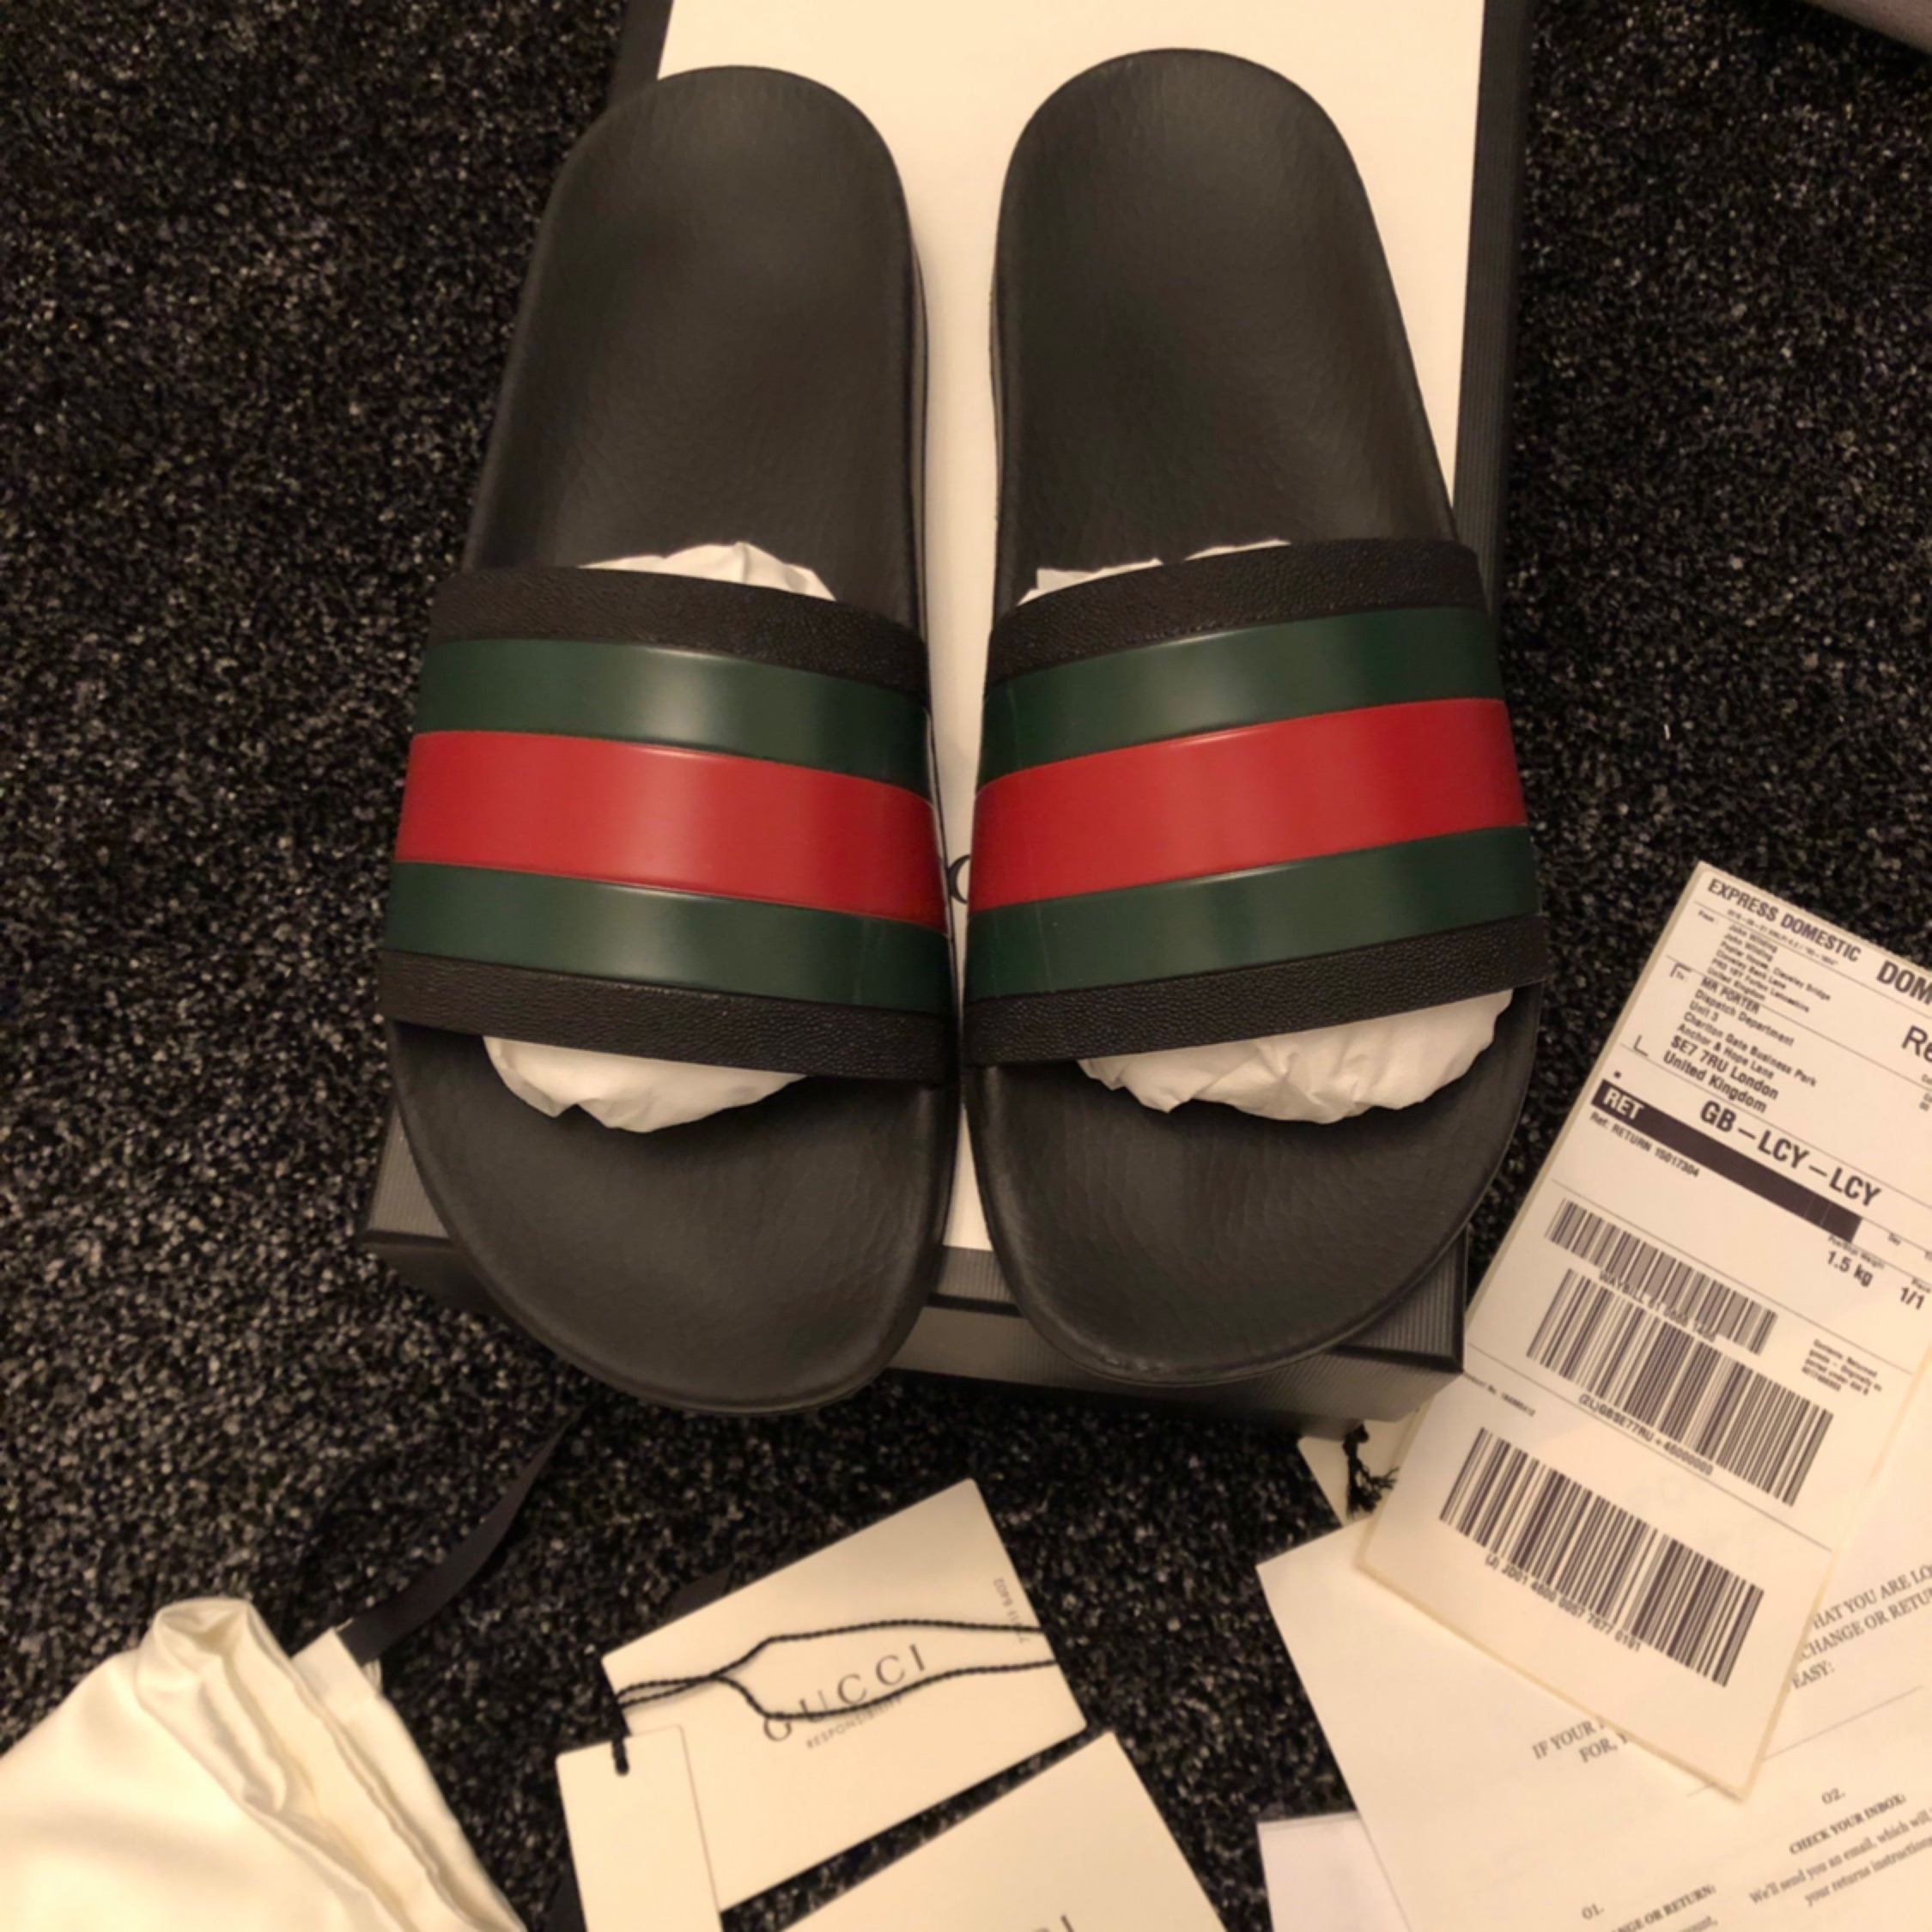 gucci slides black uk 9 gucci slides black uk 9